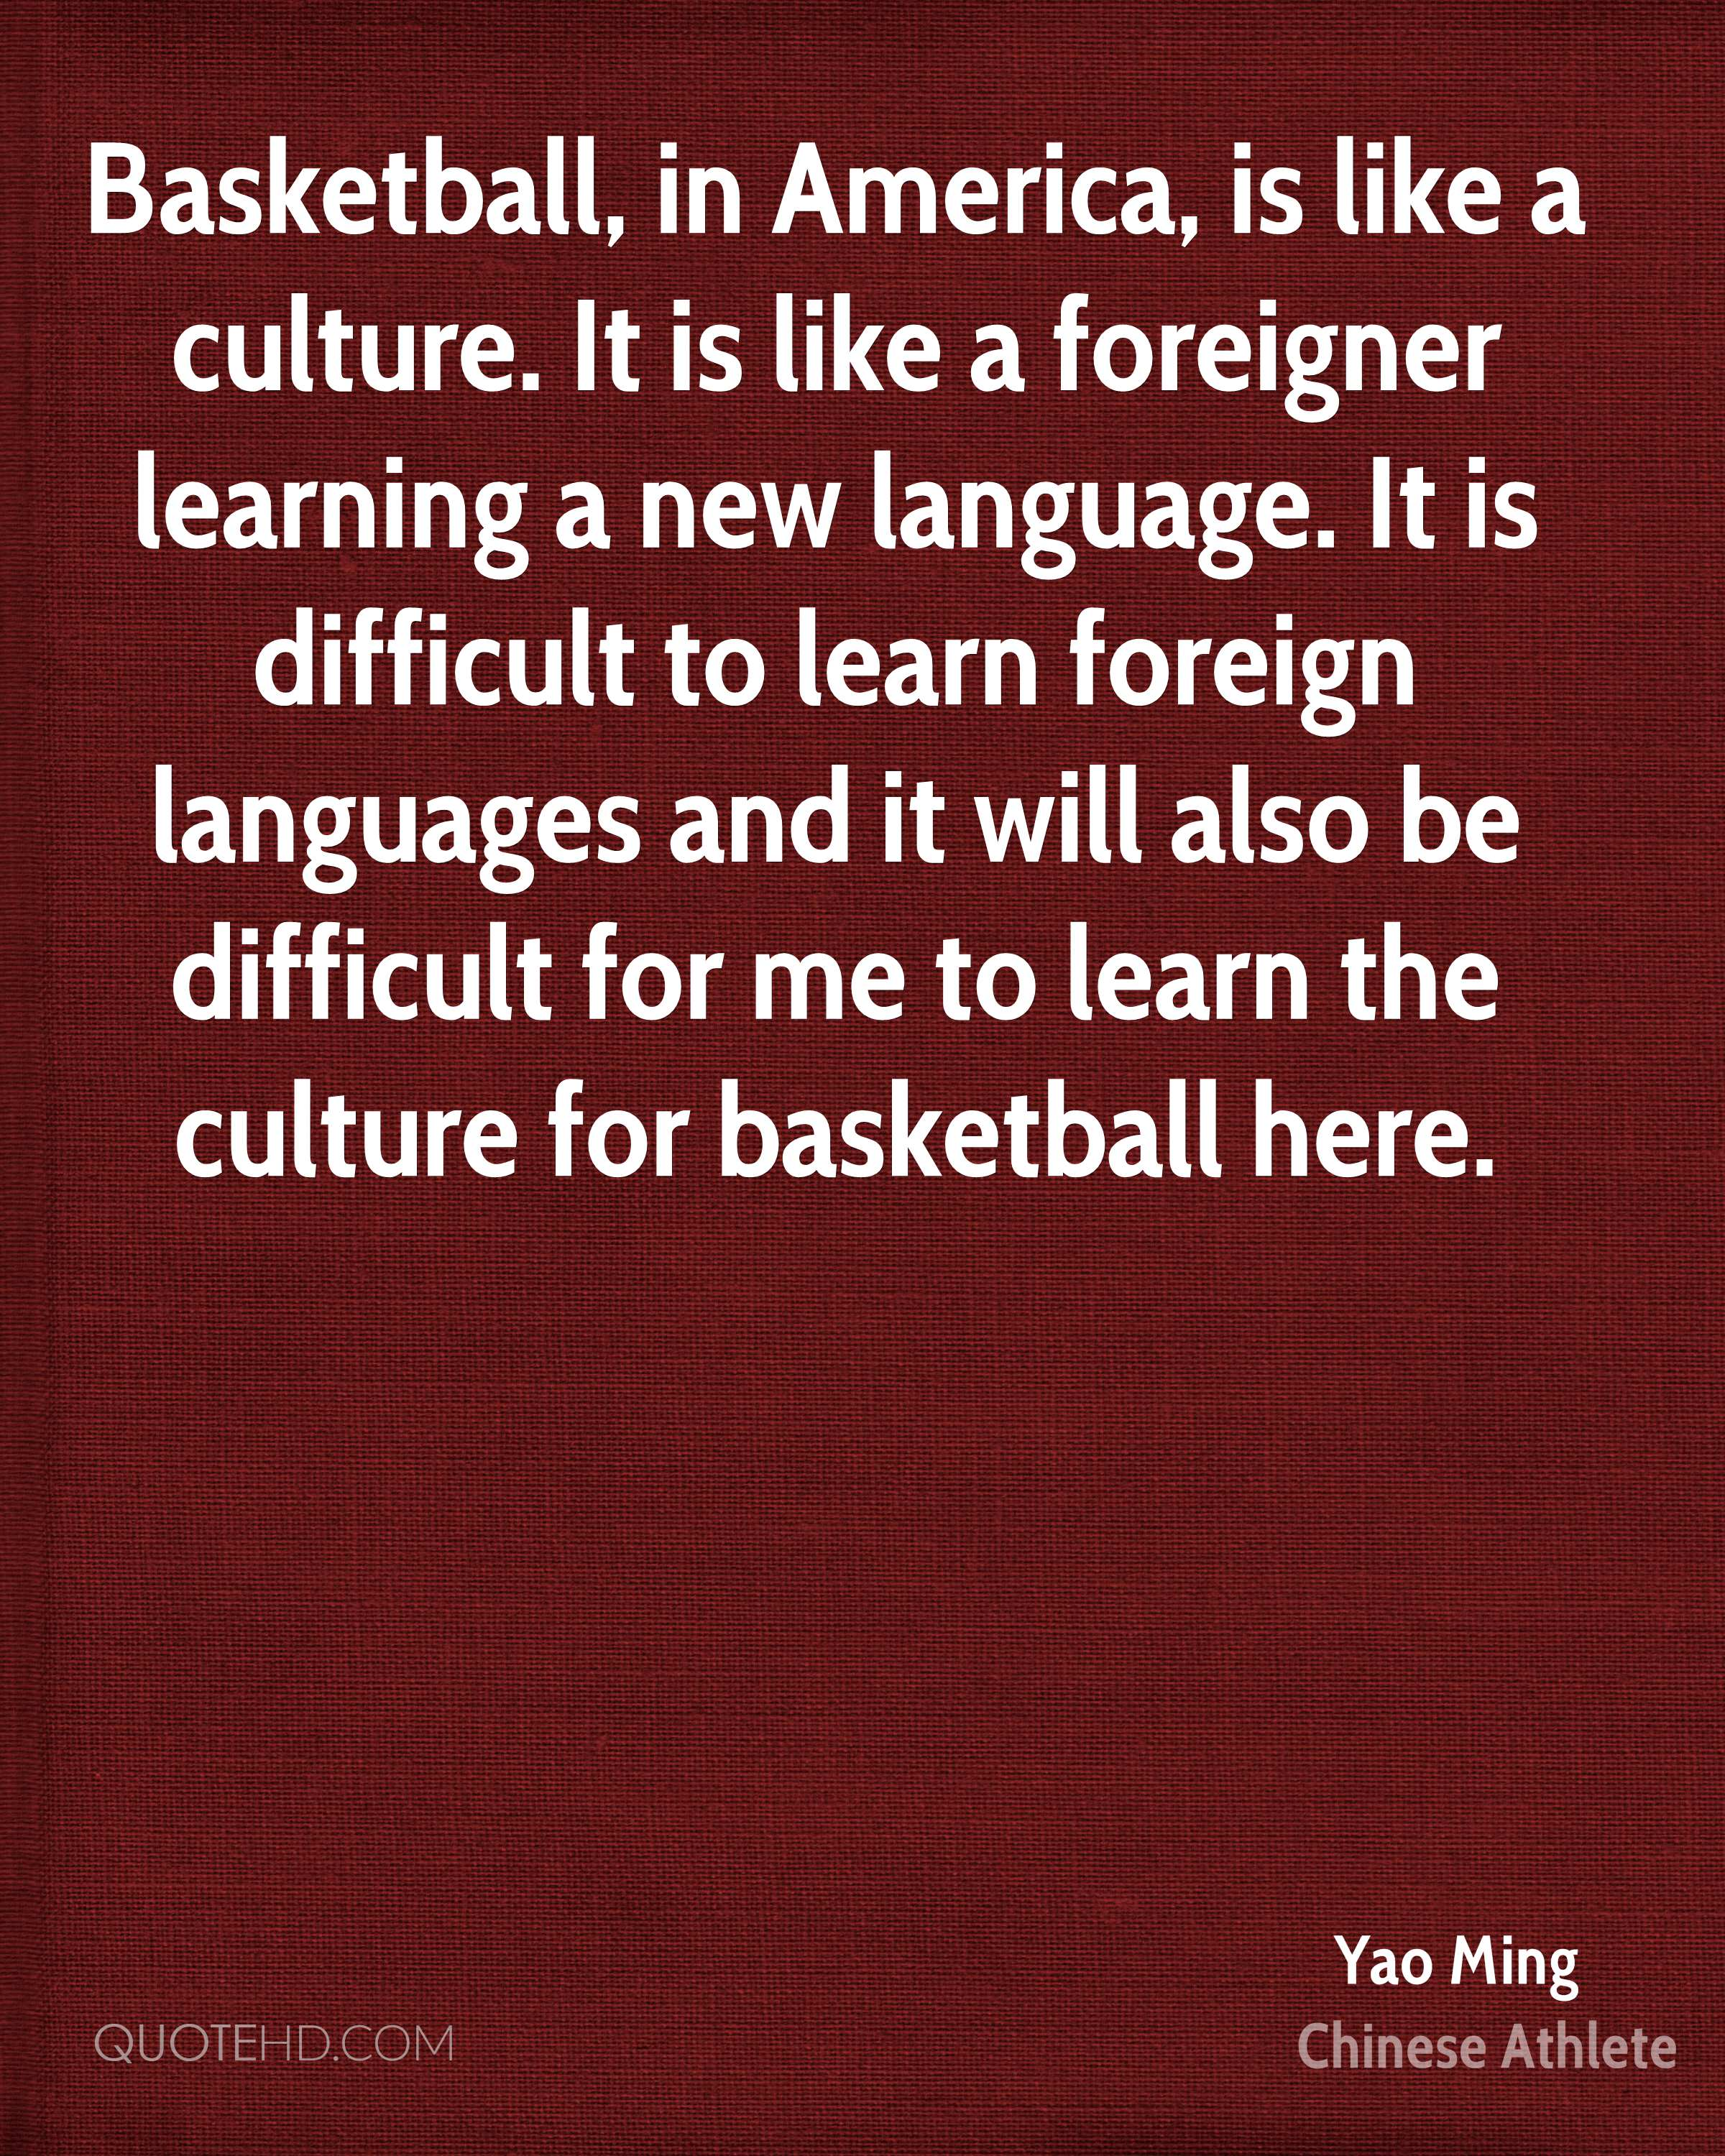 Basketball, in America, is like a culture. It is like a foreigner learning a new language. It is difficult to learn foreign languages and it will also be difficult for me to learn the culture for basketball here.